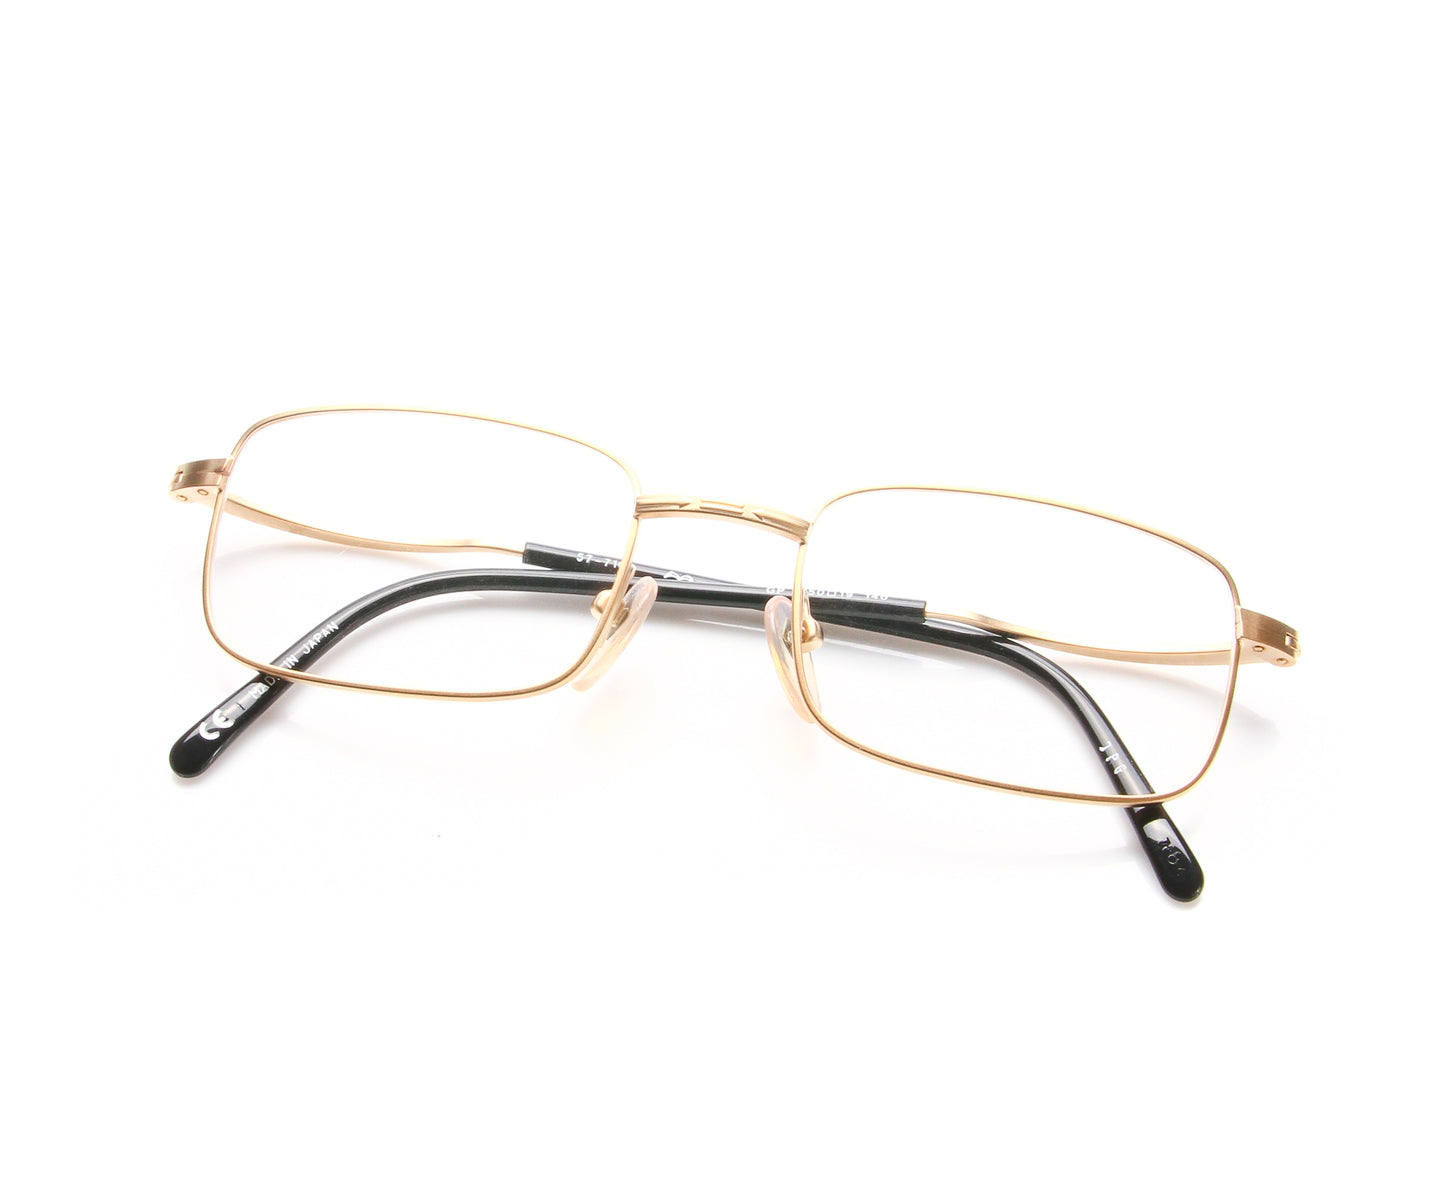 Jean Paul Gaultier 57 7104 1 Gold Plated, Jean Paul Gaultier , glasses frames, eyeglasses online, eyeglass frames, mens glasses, womens glasses, buy glasses online, designer eyeglasses, vintage sunglasses, retro sunglasses, vintage glasses, sunglass, eyeglass, glasses, lens, vintage frames company, vf